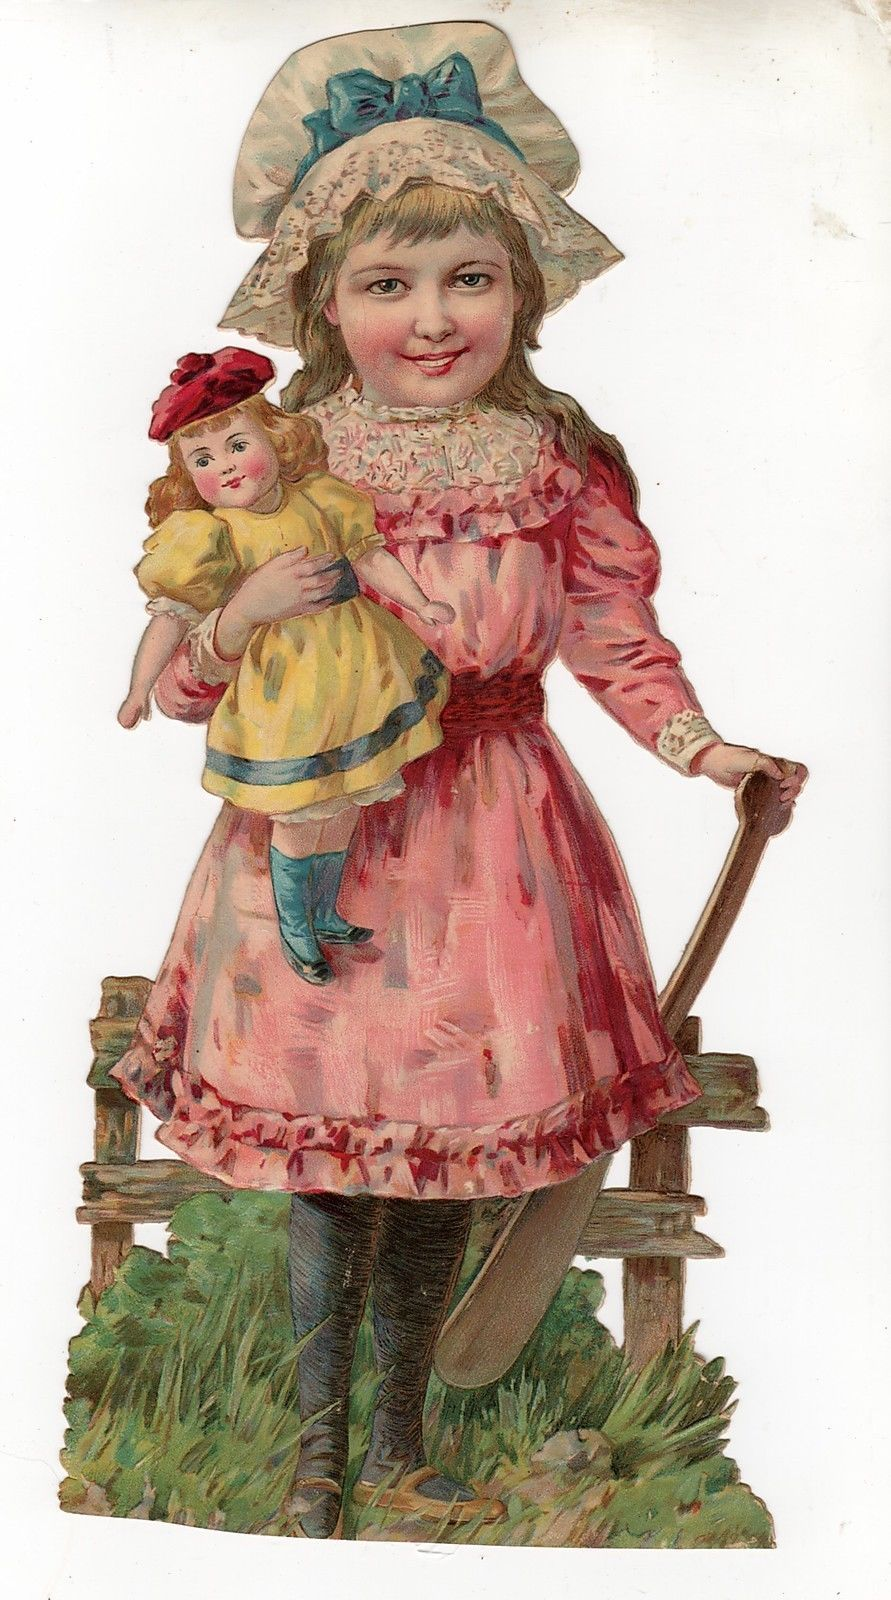 X1198 Large Die Cut Scrap of Child and Doll App 5 by 10 5 Inches | eBay